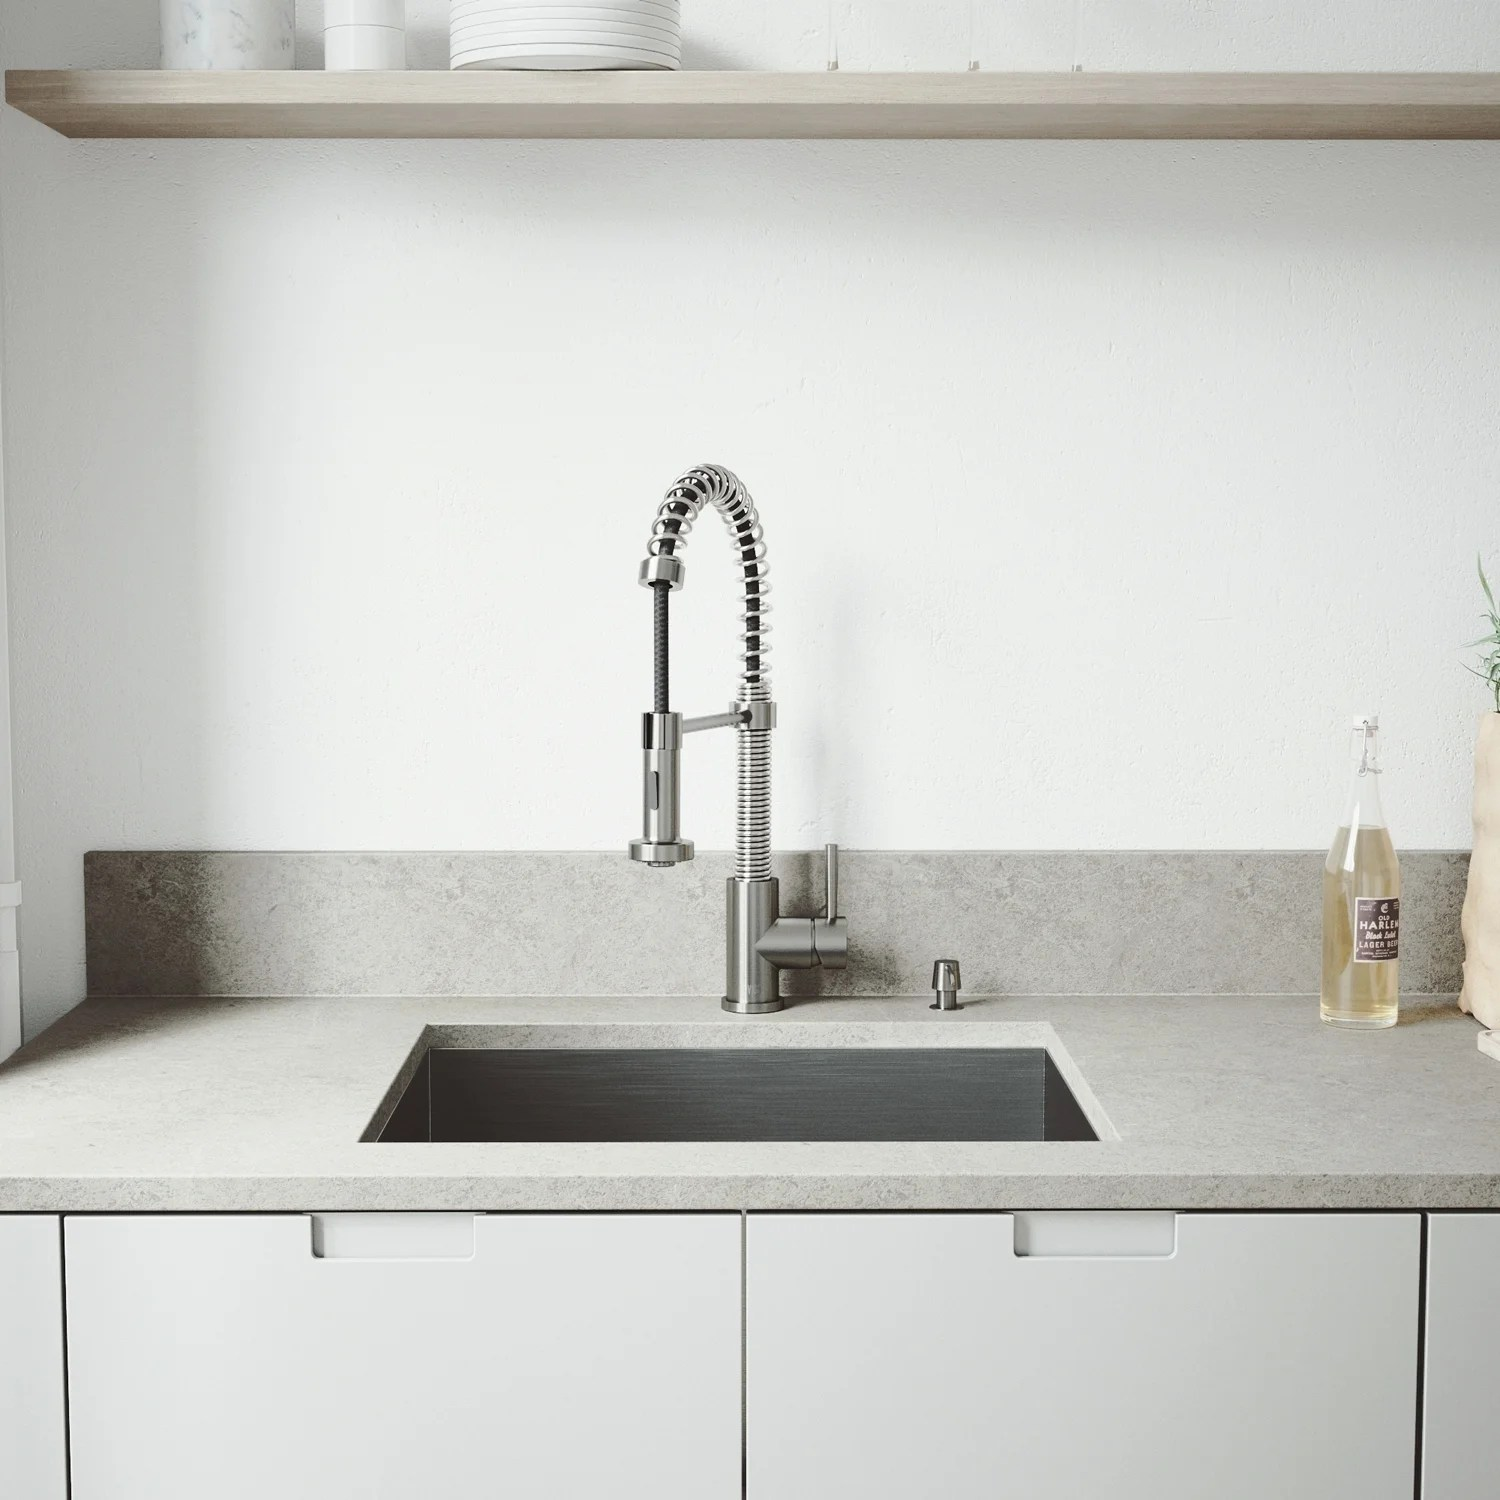 Kitchen Sink For 18 Cabinet Vigo Ludlow 23 Inch Stainless Steel Kitchen Sink And Edison Faucet Set